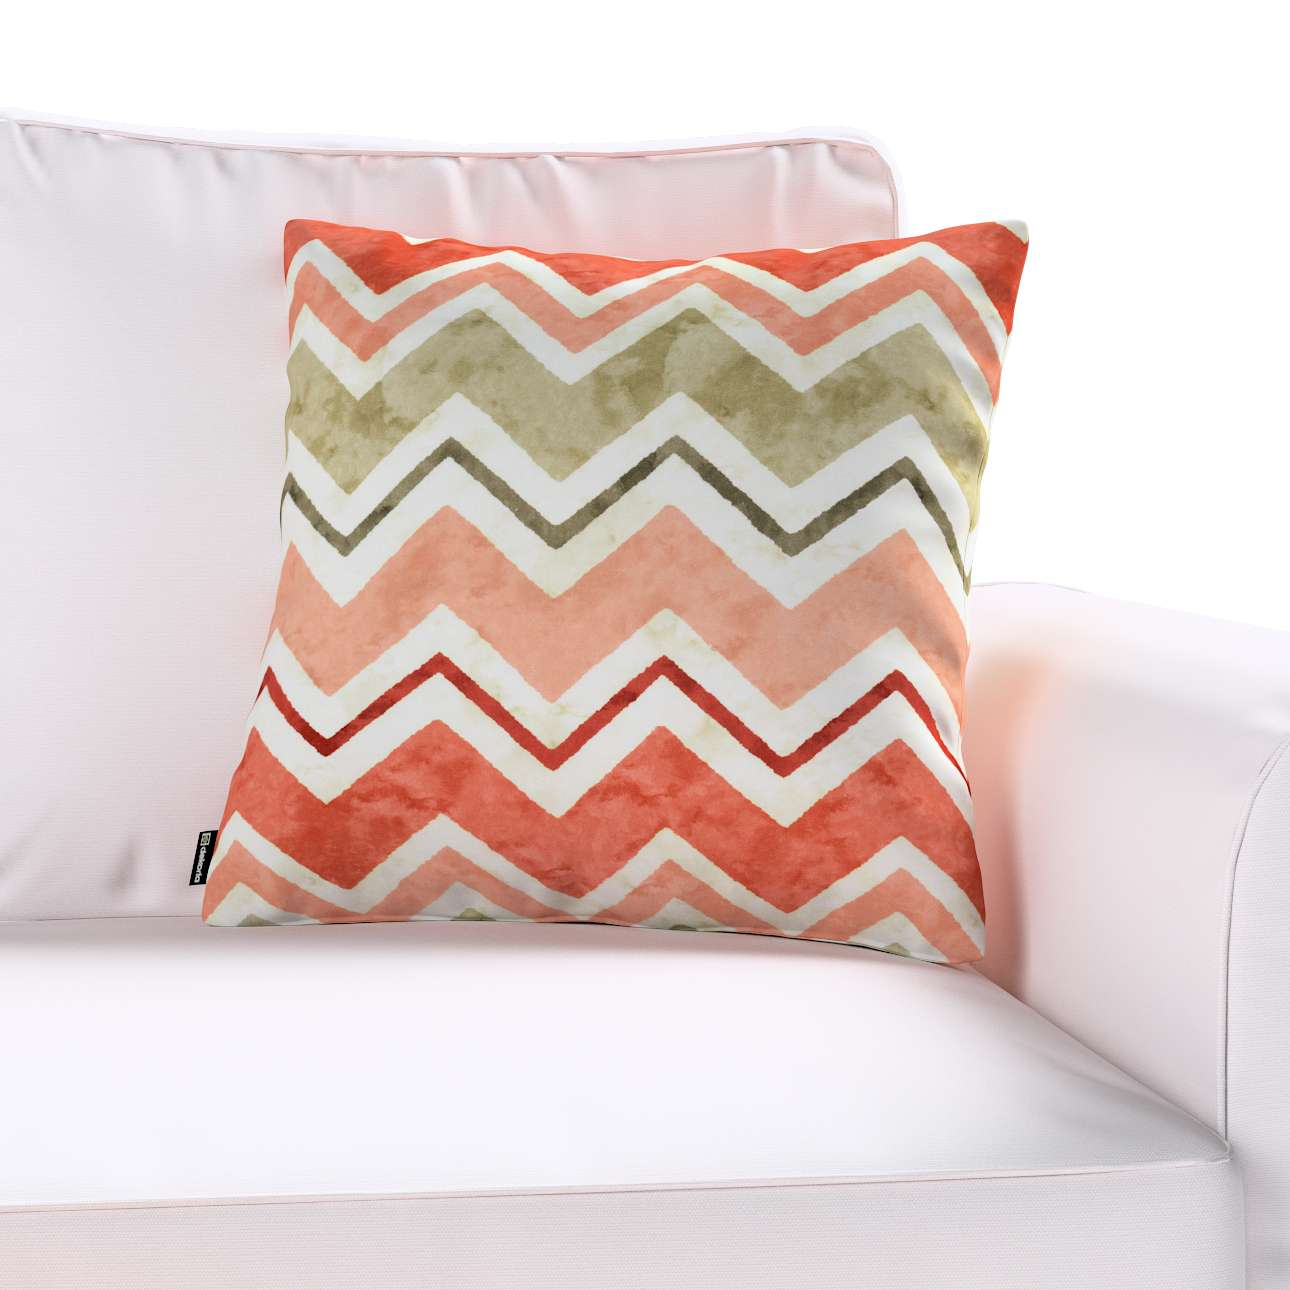 Kinga cushion cover 43 × 43 cm (17 × 17 inch) in collection Acapulco, fabric: 141-40